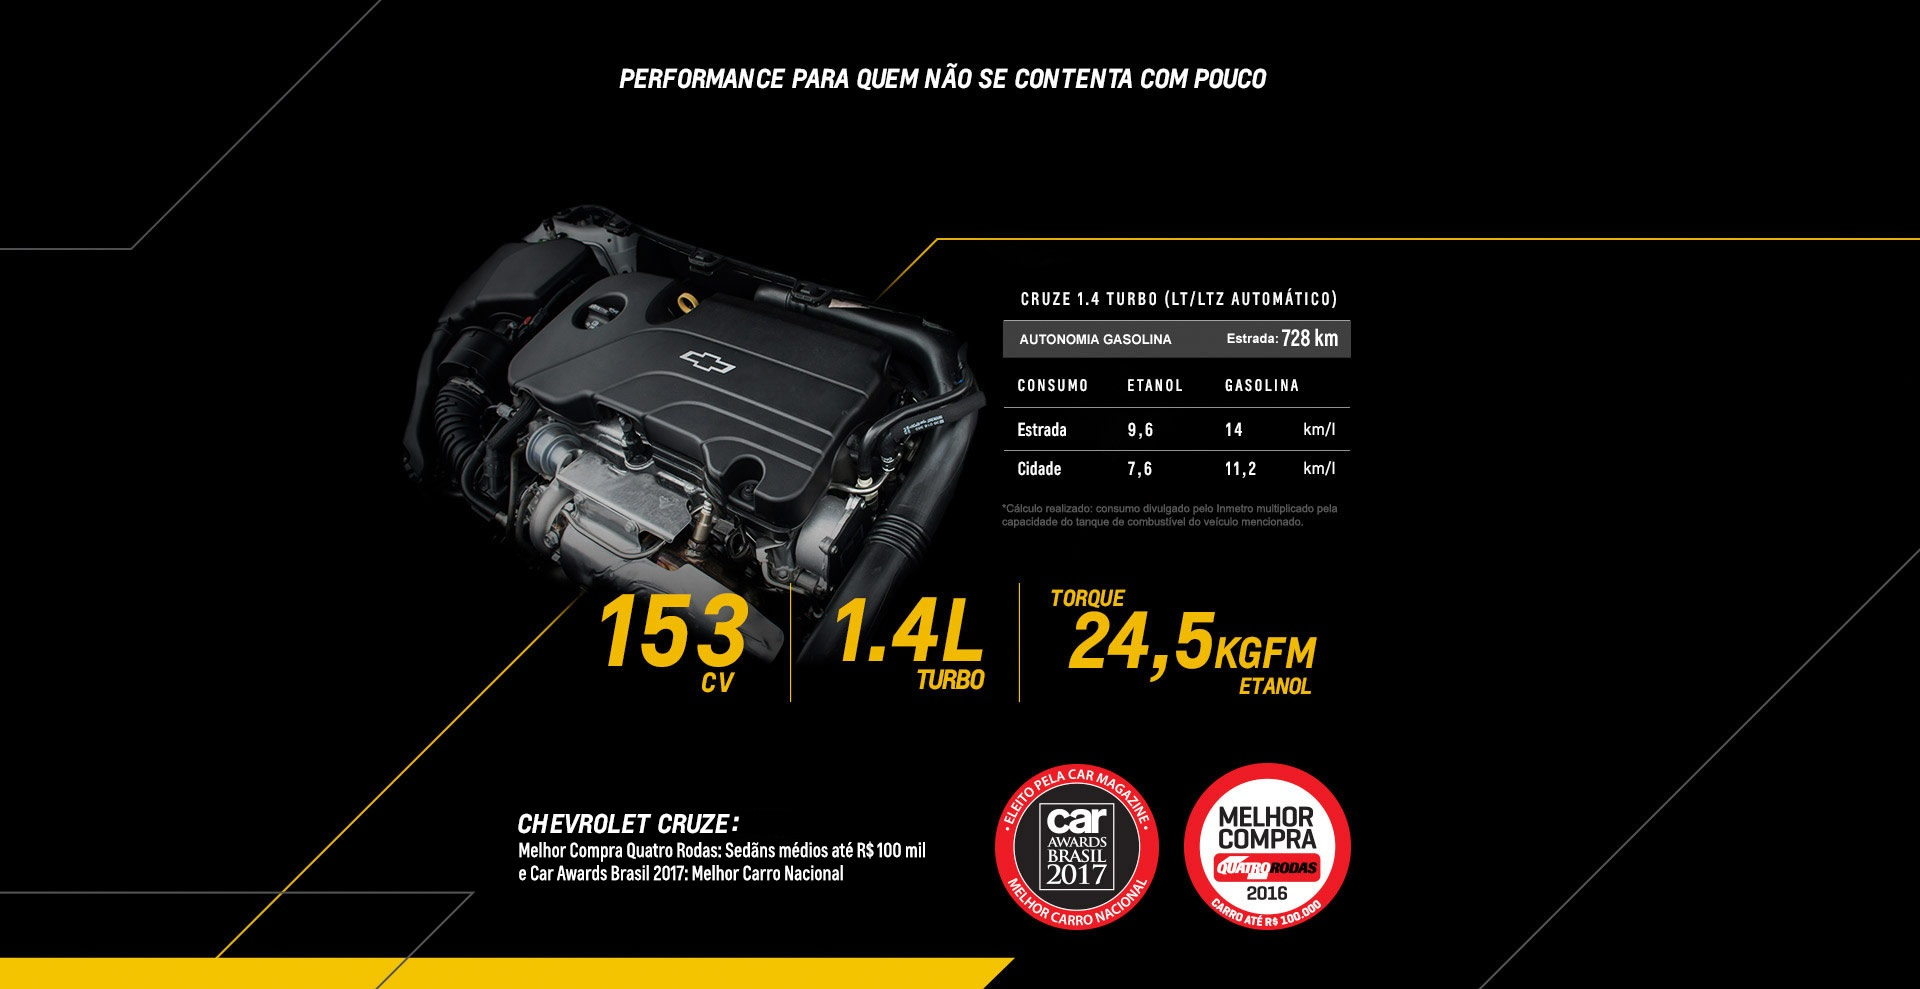 Cruze - Perfomance - Dig Chevrolet